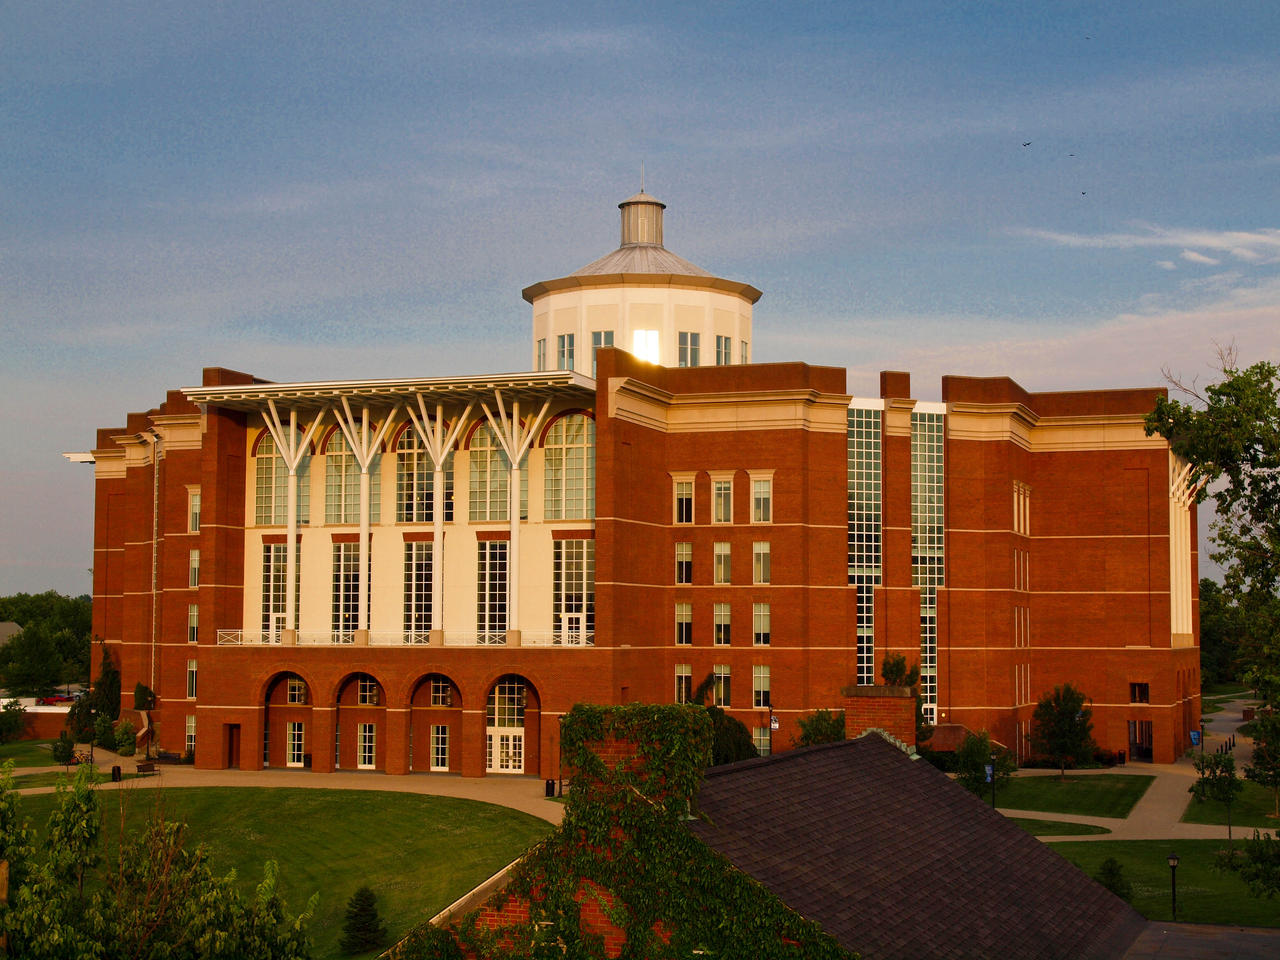 University of Kentucky Library by McAllisterBryant on DeviantArt